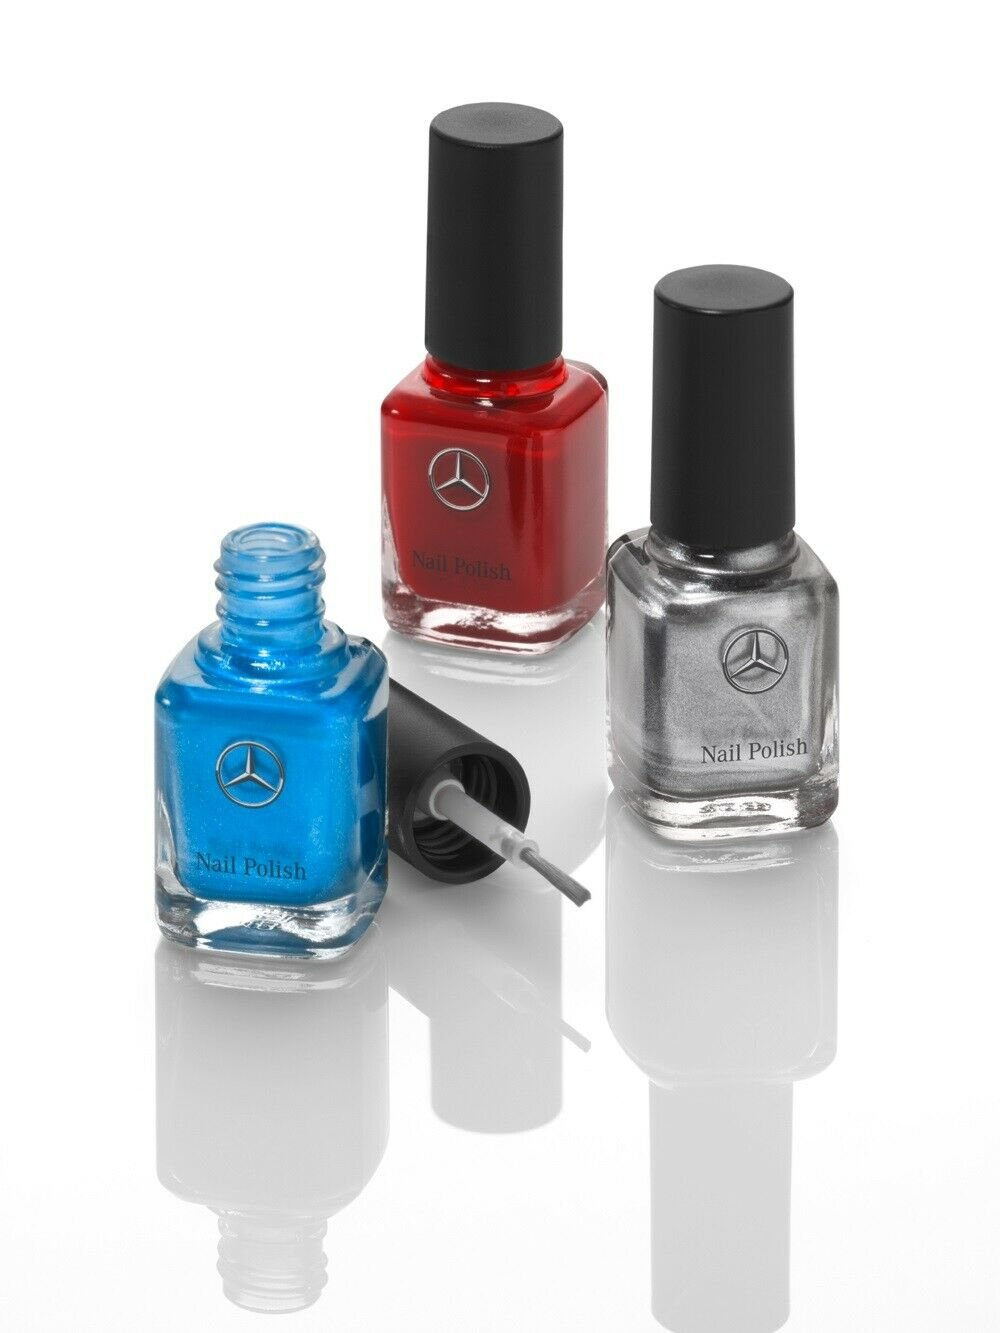 Mercedes Benz Nail Polish Lacquer, set of 3, Genuine